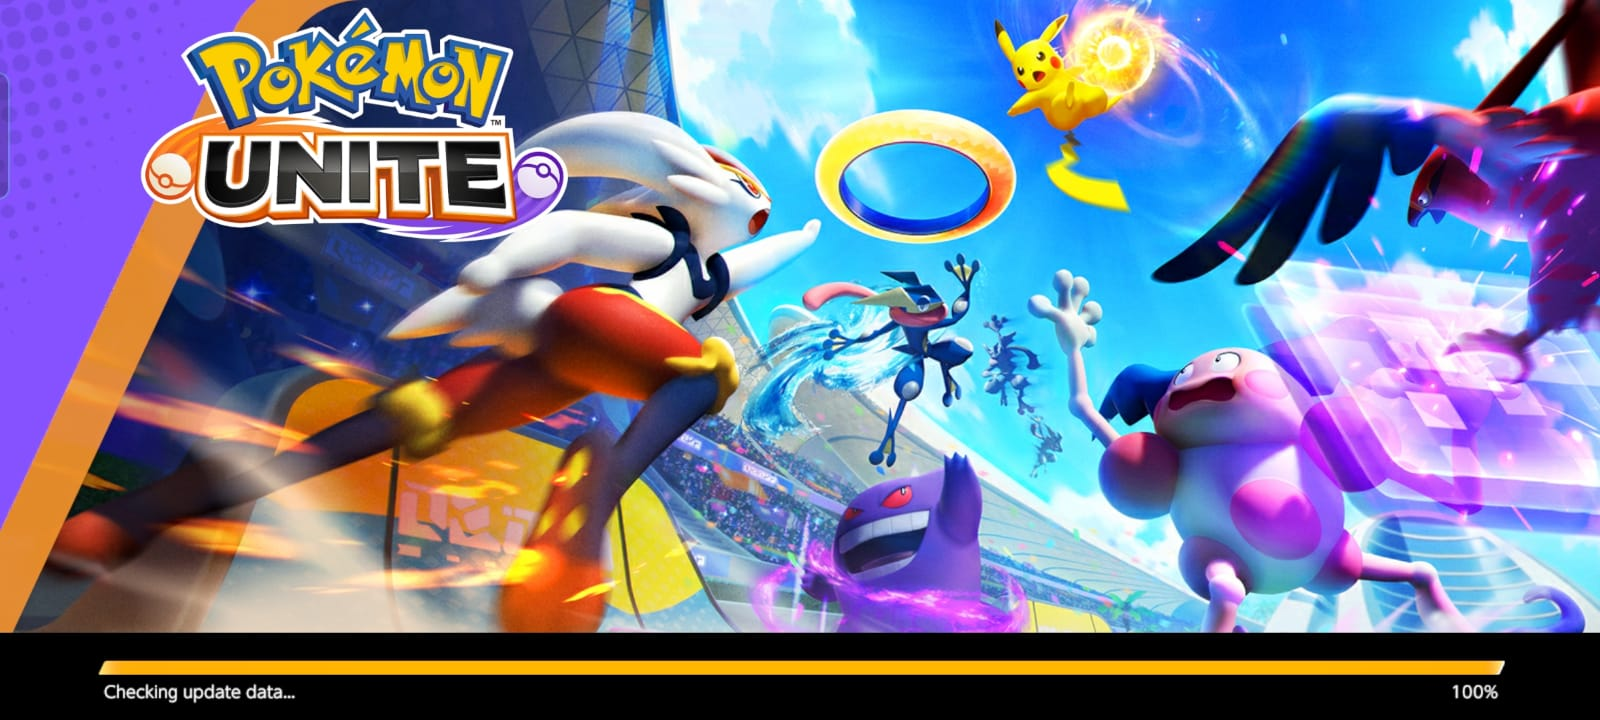 Pokémon UNITE APK v1.2.1.2 and OBB download for Android 4